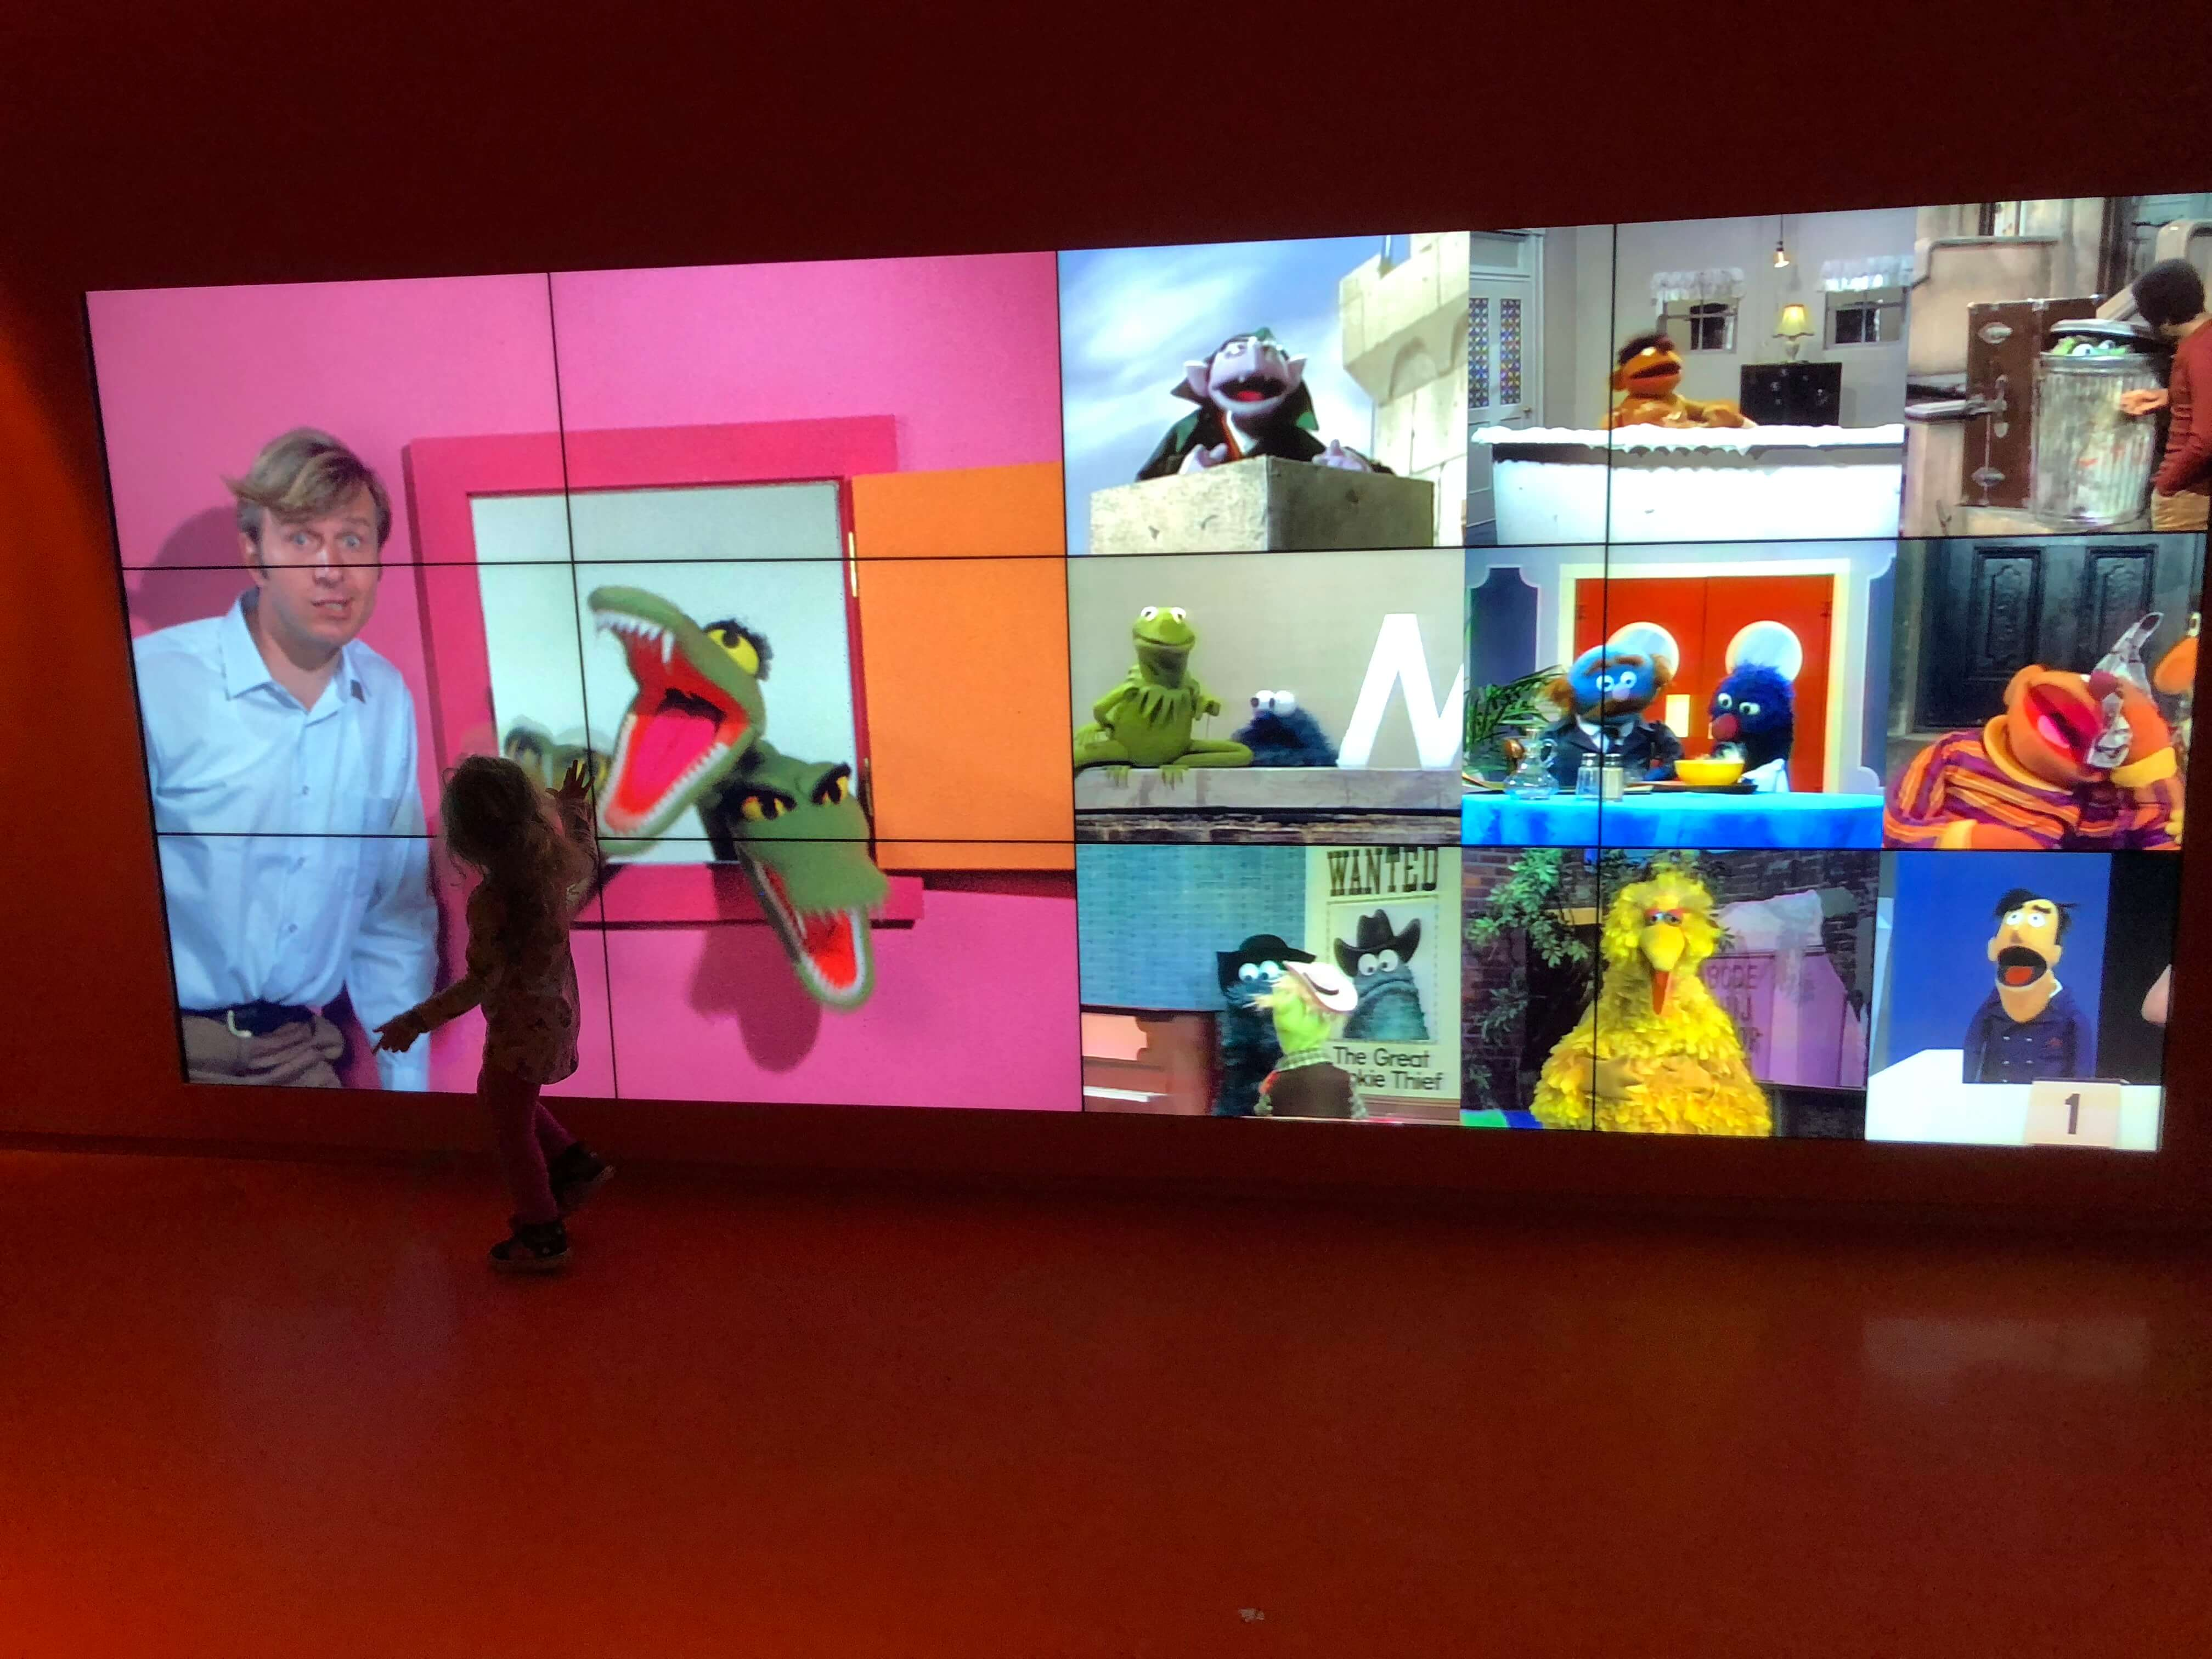 The Jim Henson Exhibition at the museum of the moving image for kids